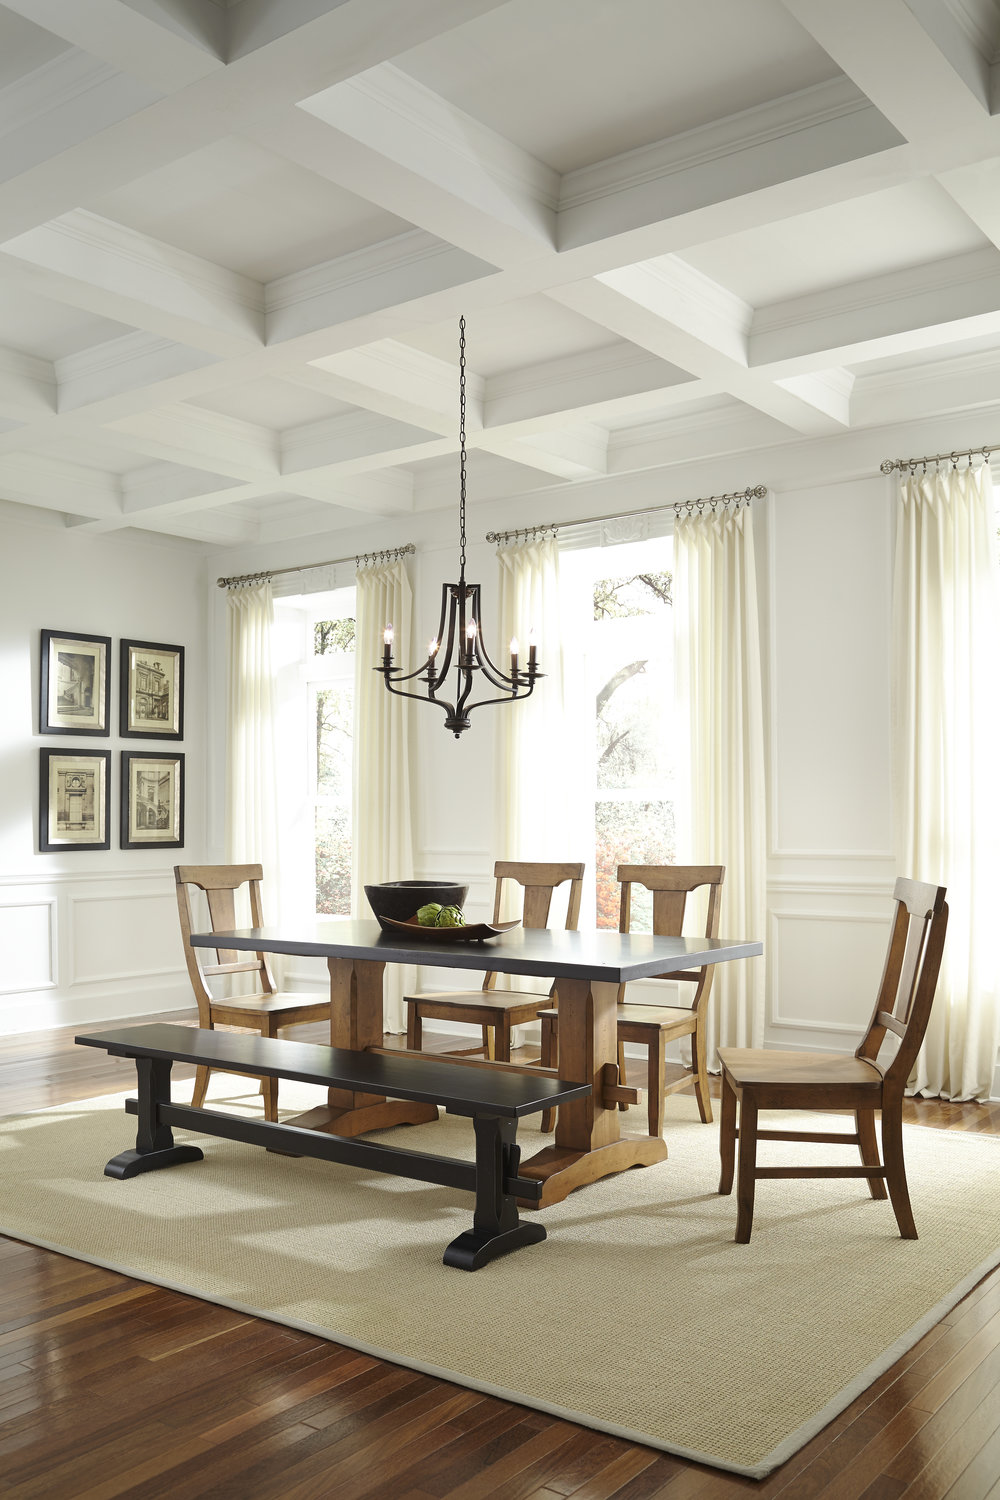 Whitewood trestle table.jpg